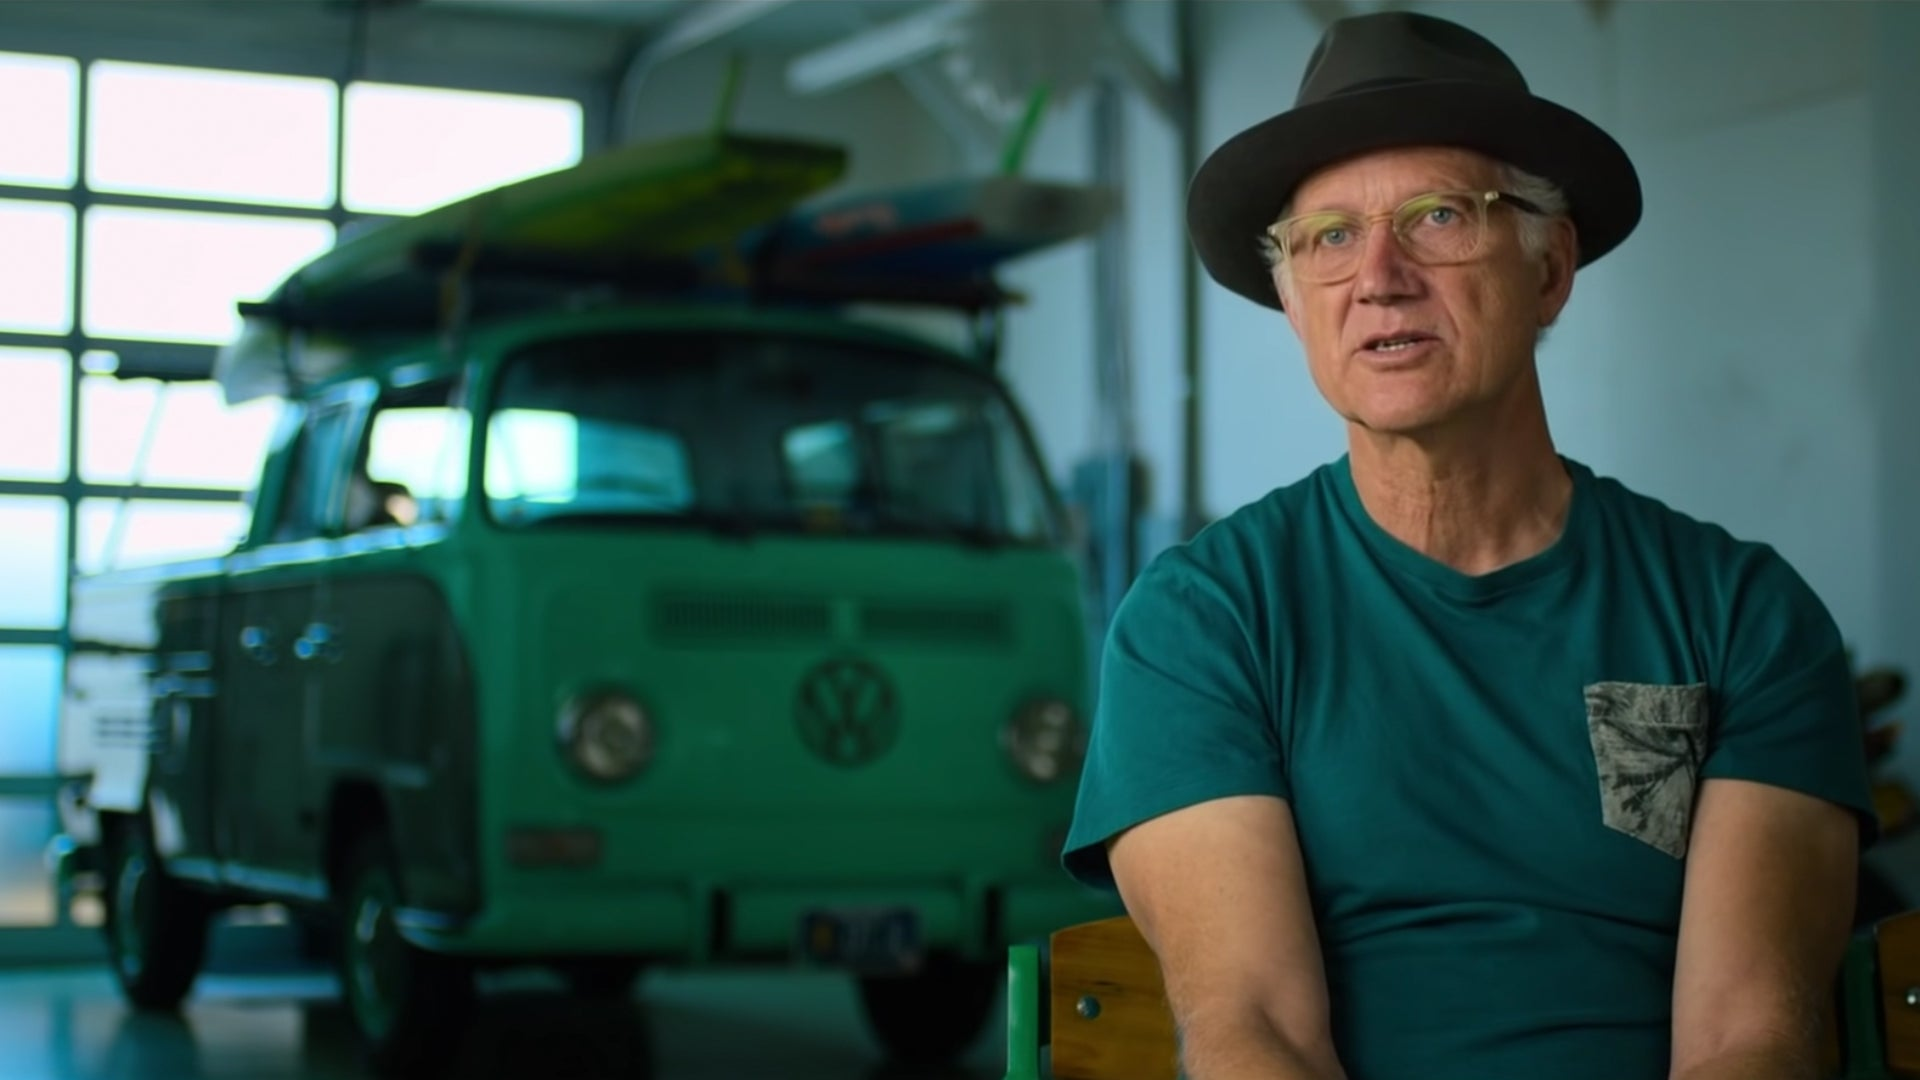 The Art of Design Footwear Design Tinker Hatfield